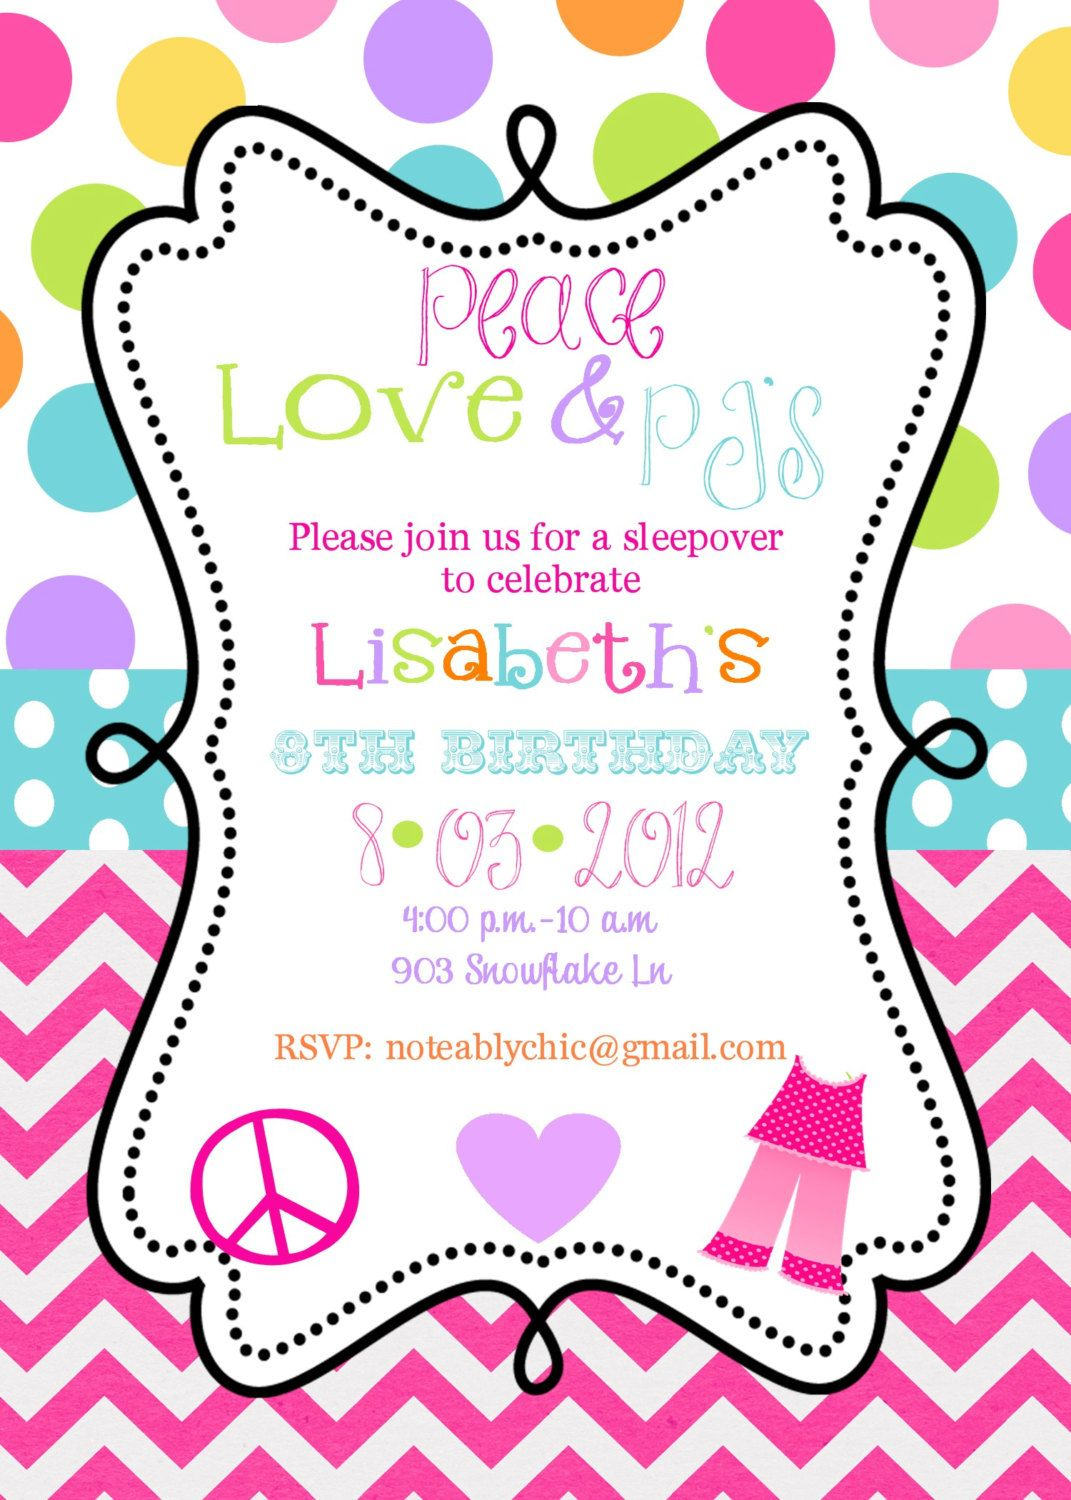 Free Birthday Invitations Templates My Birthday Pinterest - Birthday invitation email templates free